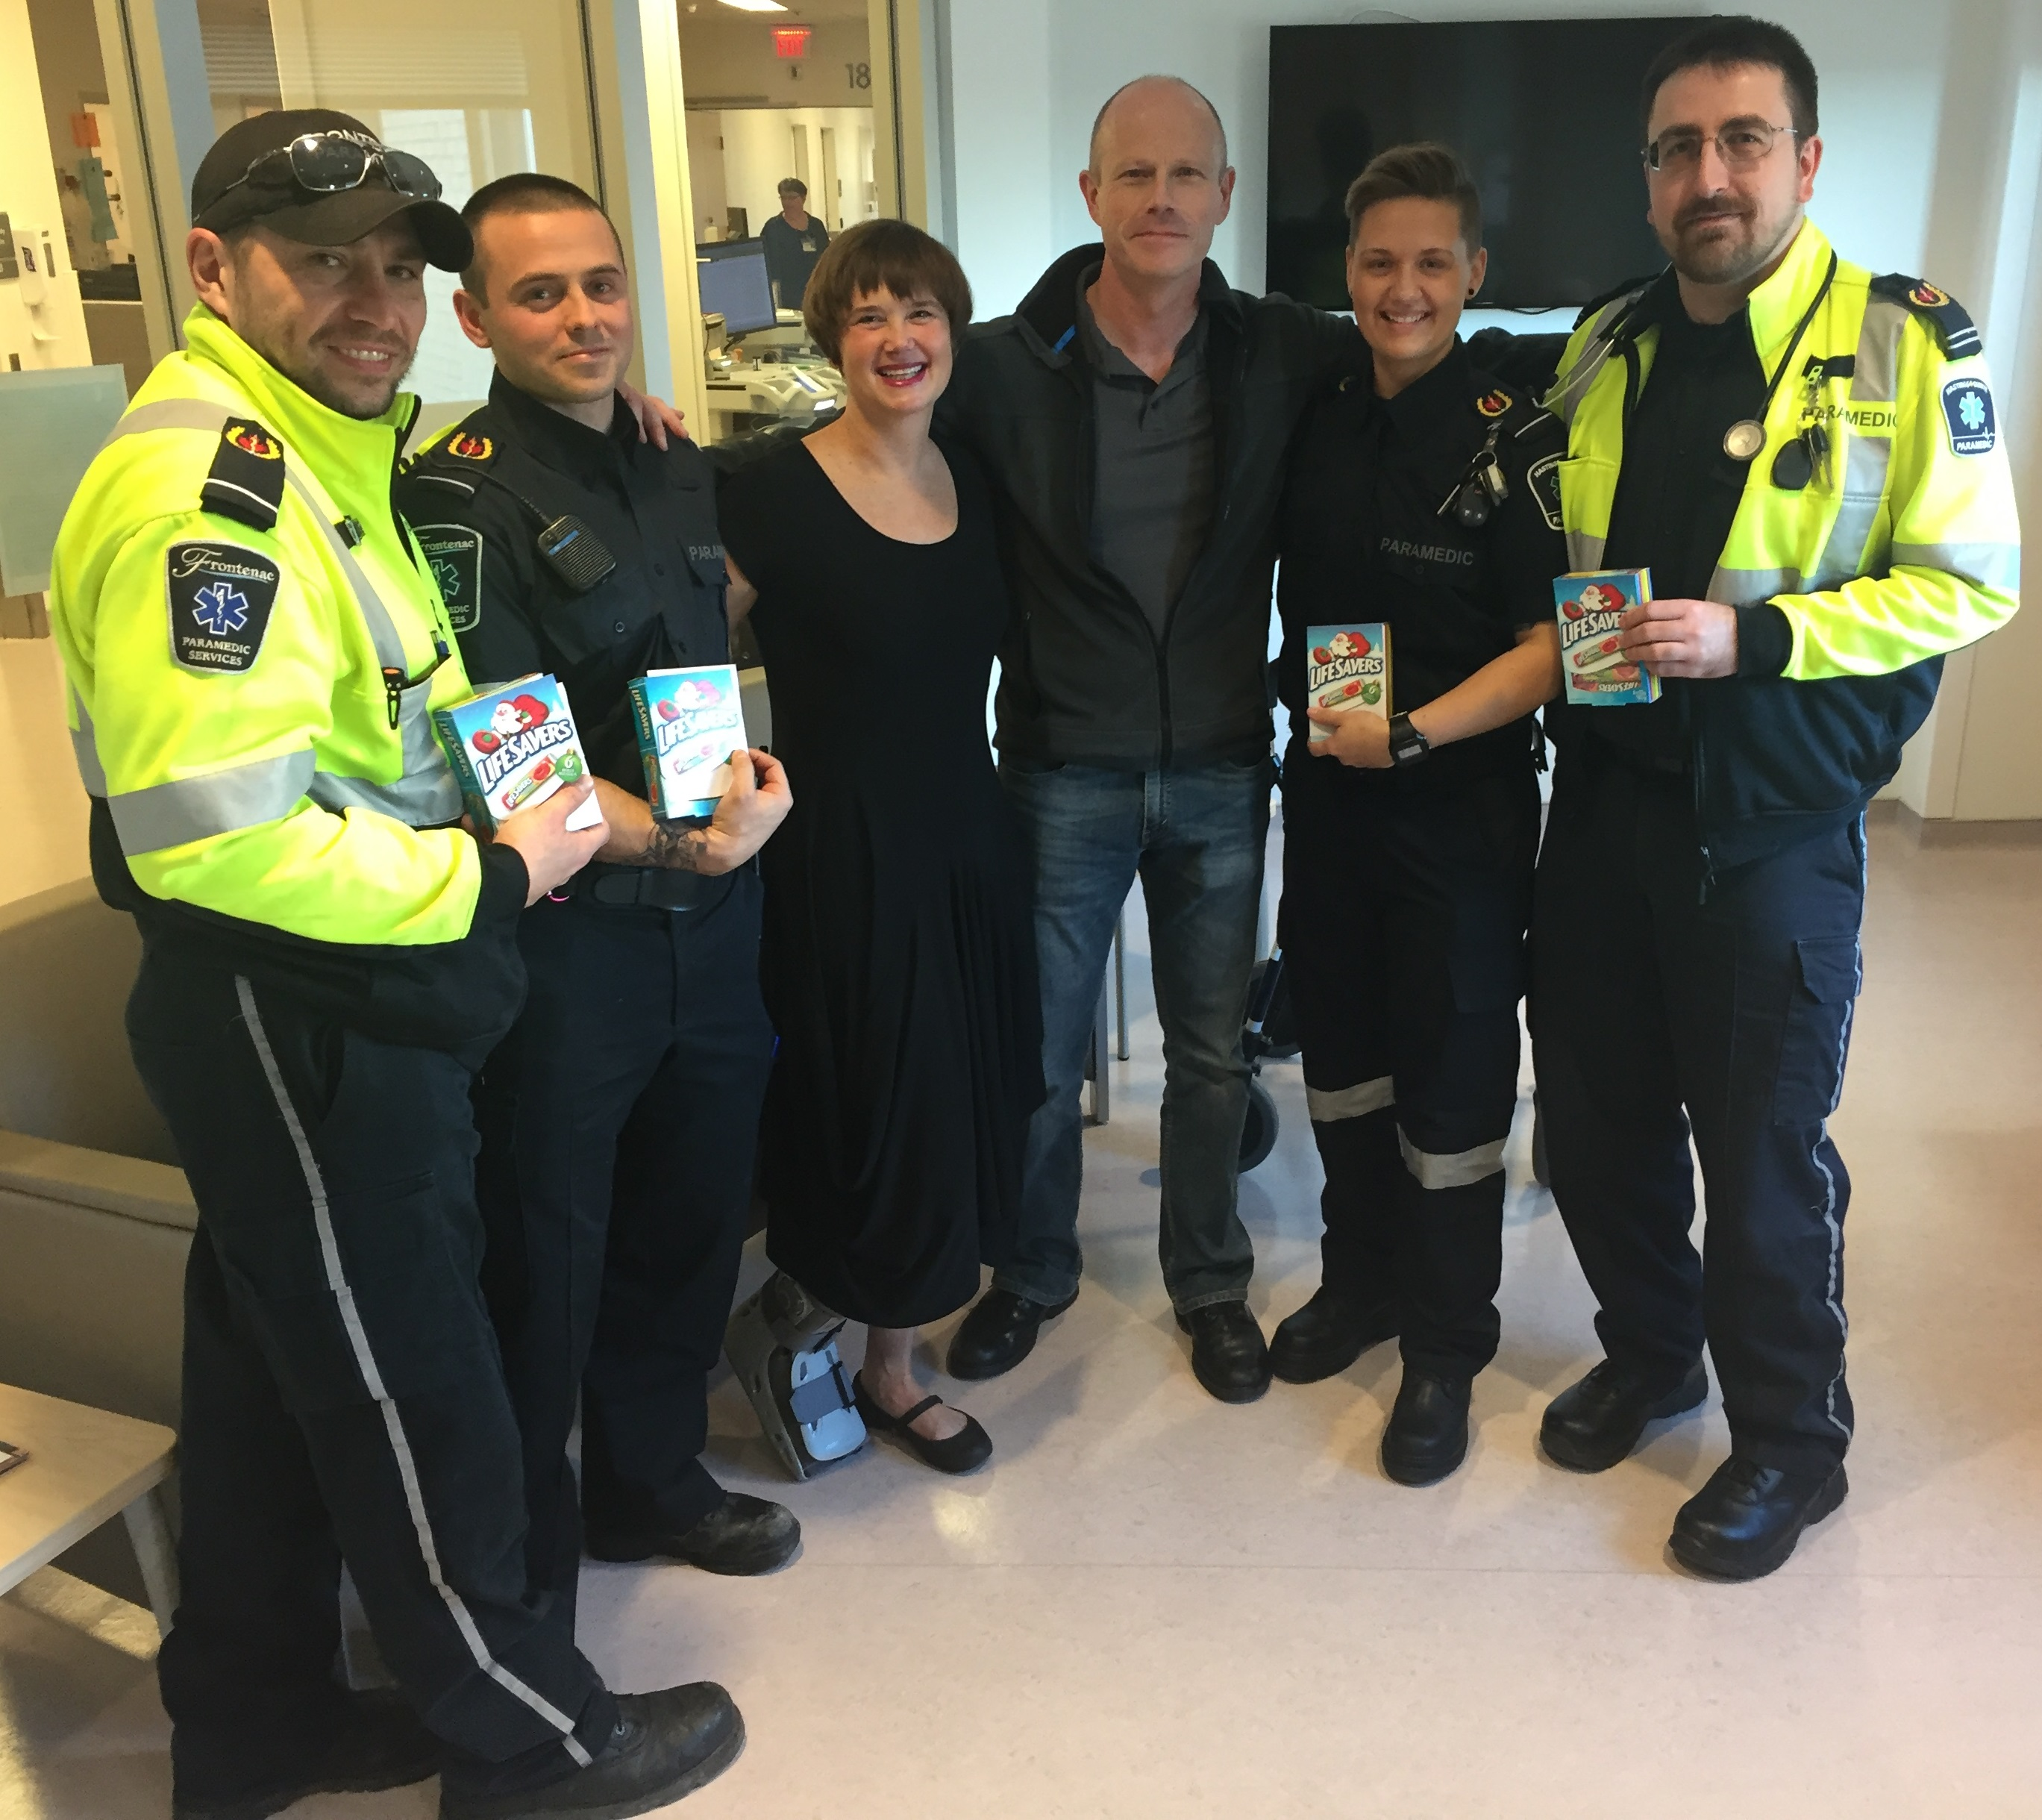 Four weeks after paramedics brought her back to life, Constance meets the men and woman who saved her